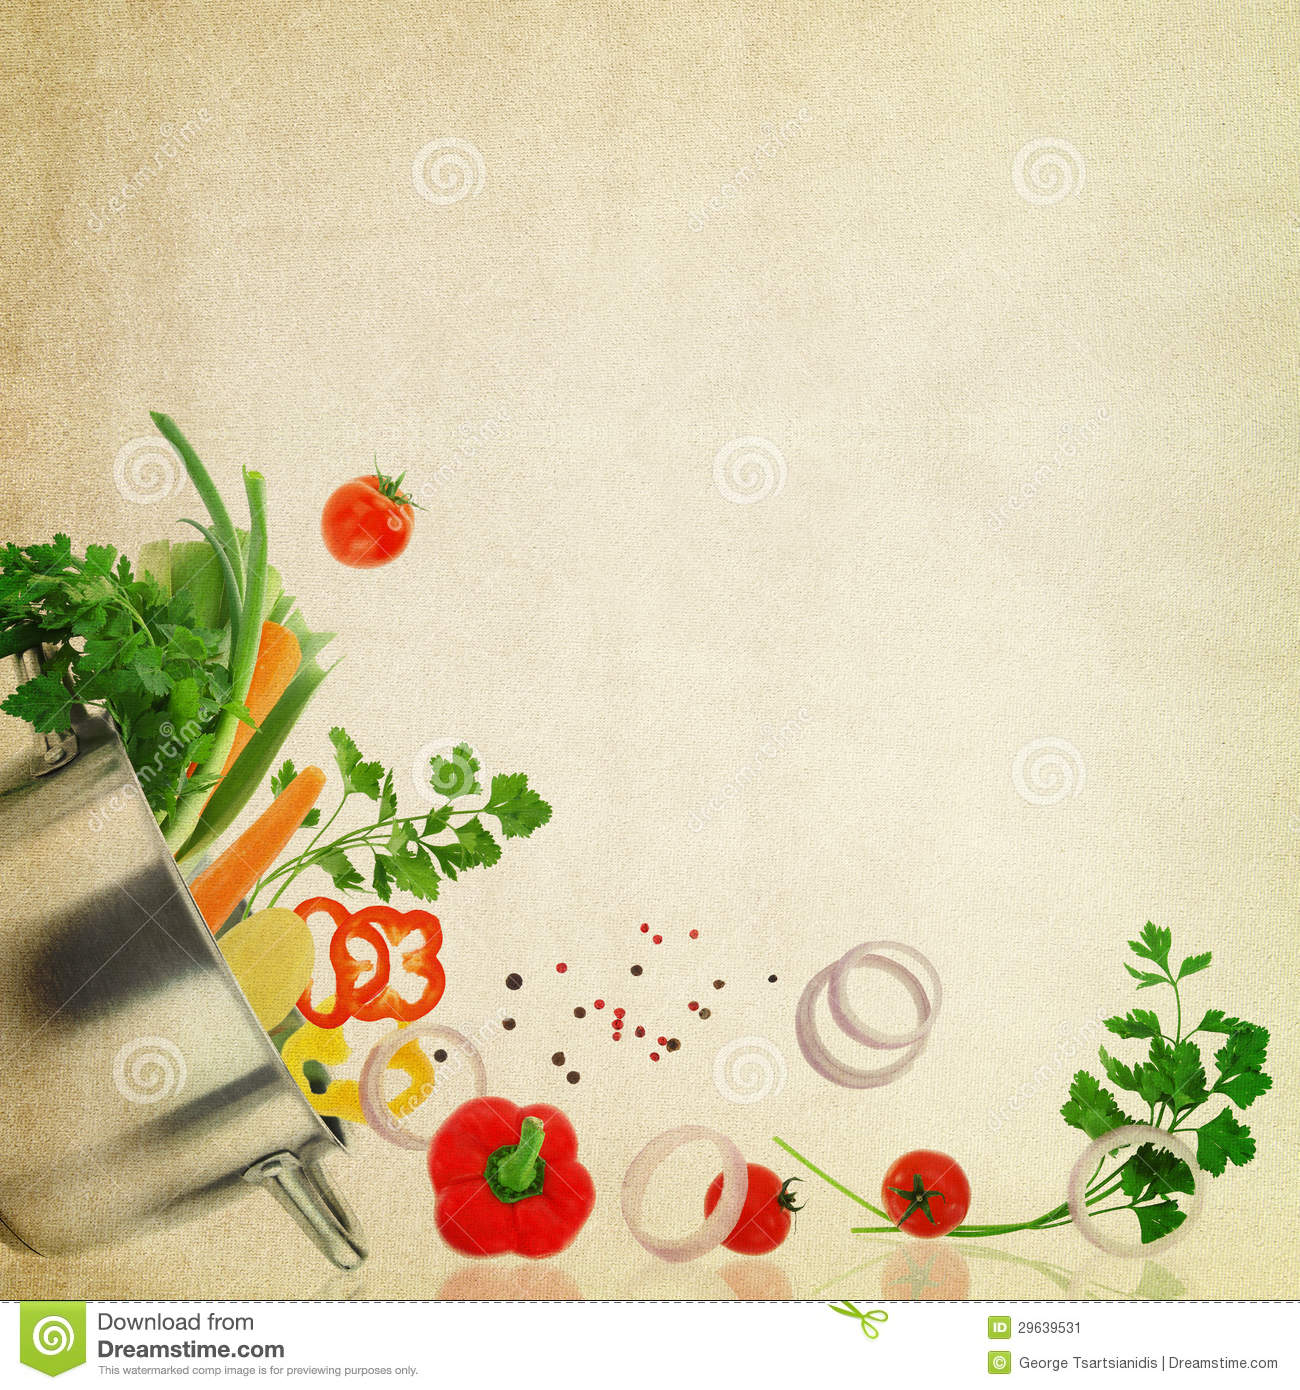 Recipe book cover clipart clipart library download Cookbook Covers Clipart - Clipart Kid clipart library download